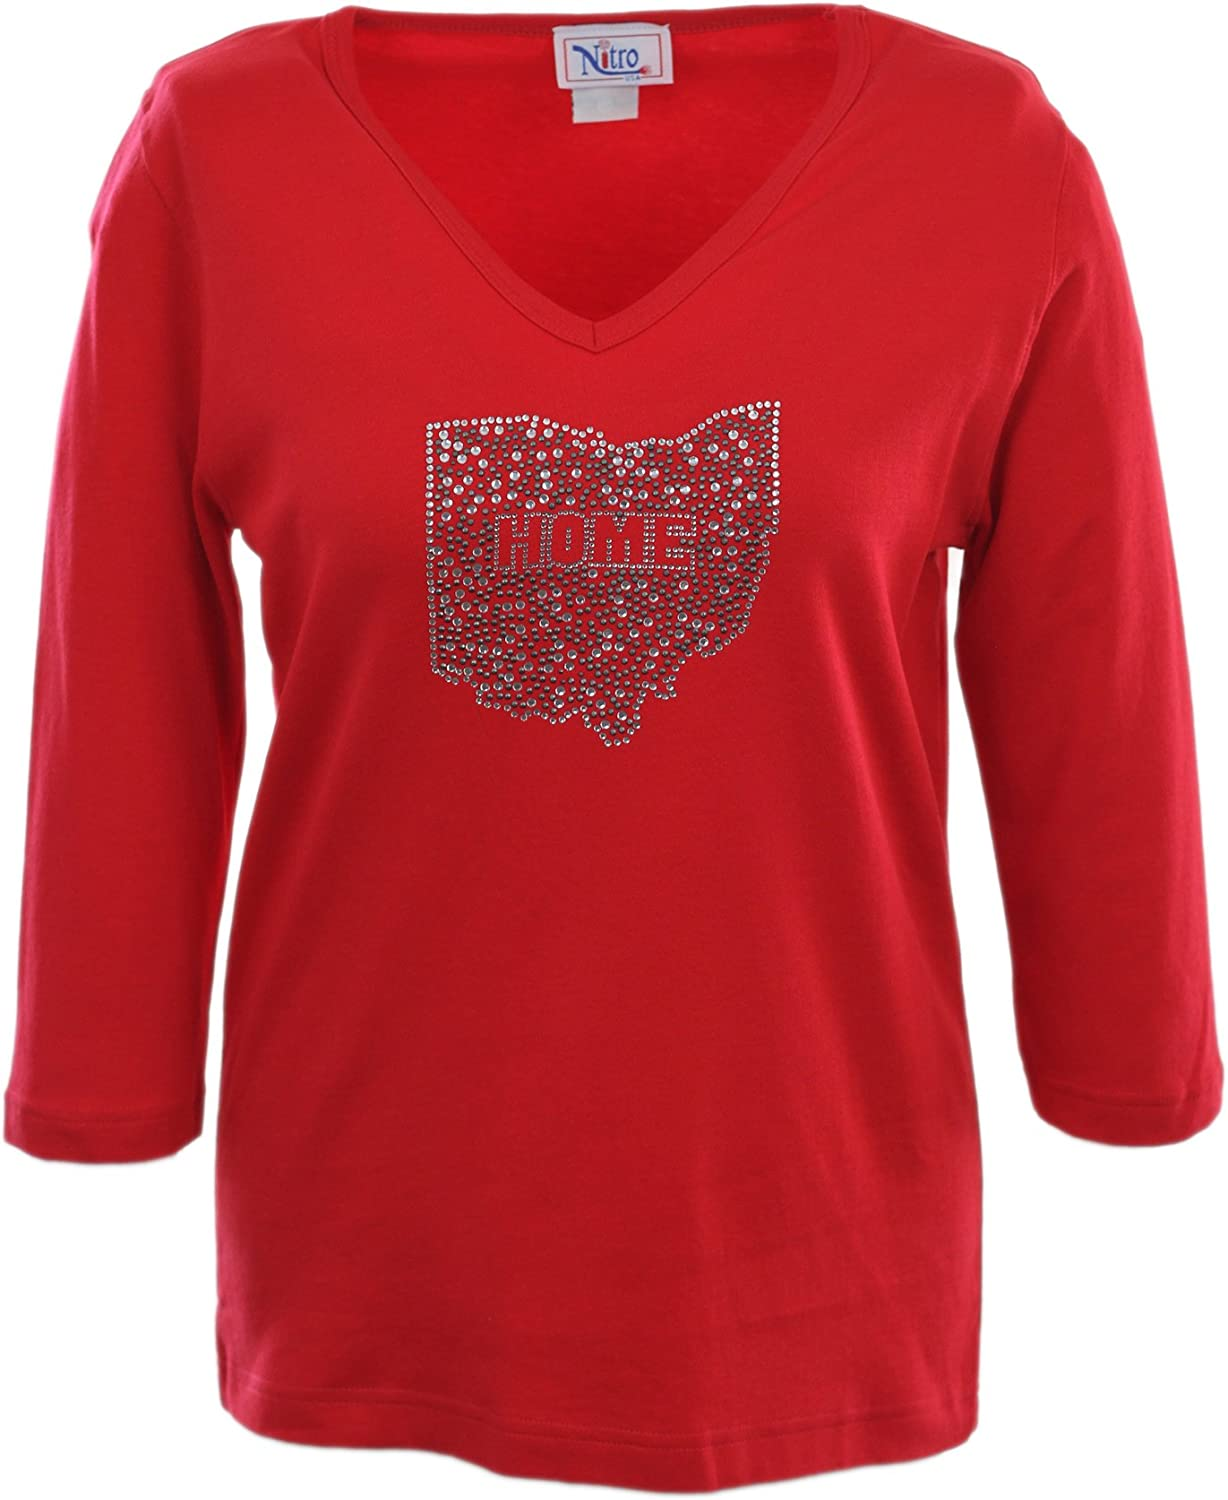 Nitro USA NCAA Women's V-Neck 3/4 Sleeve Top with Bling State Home